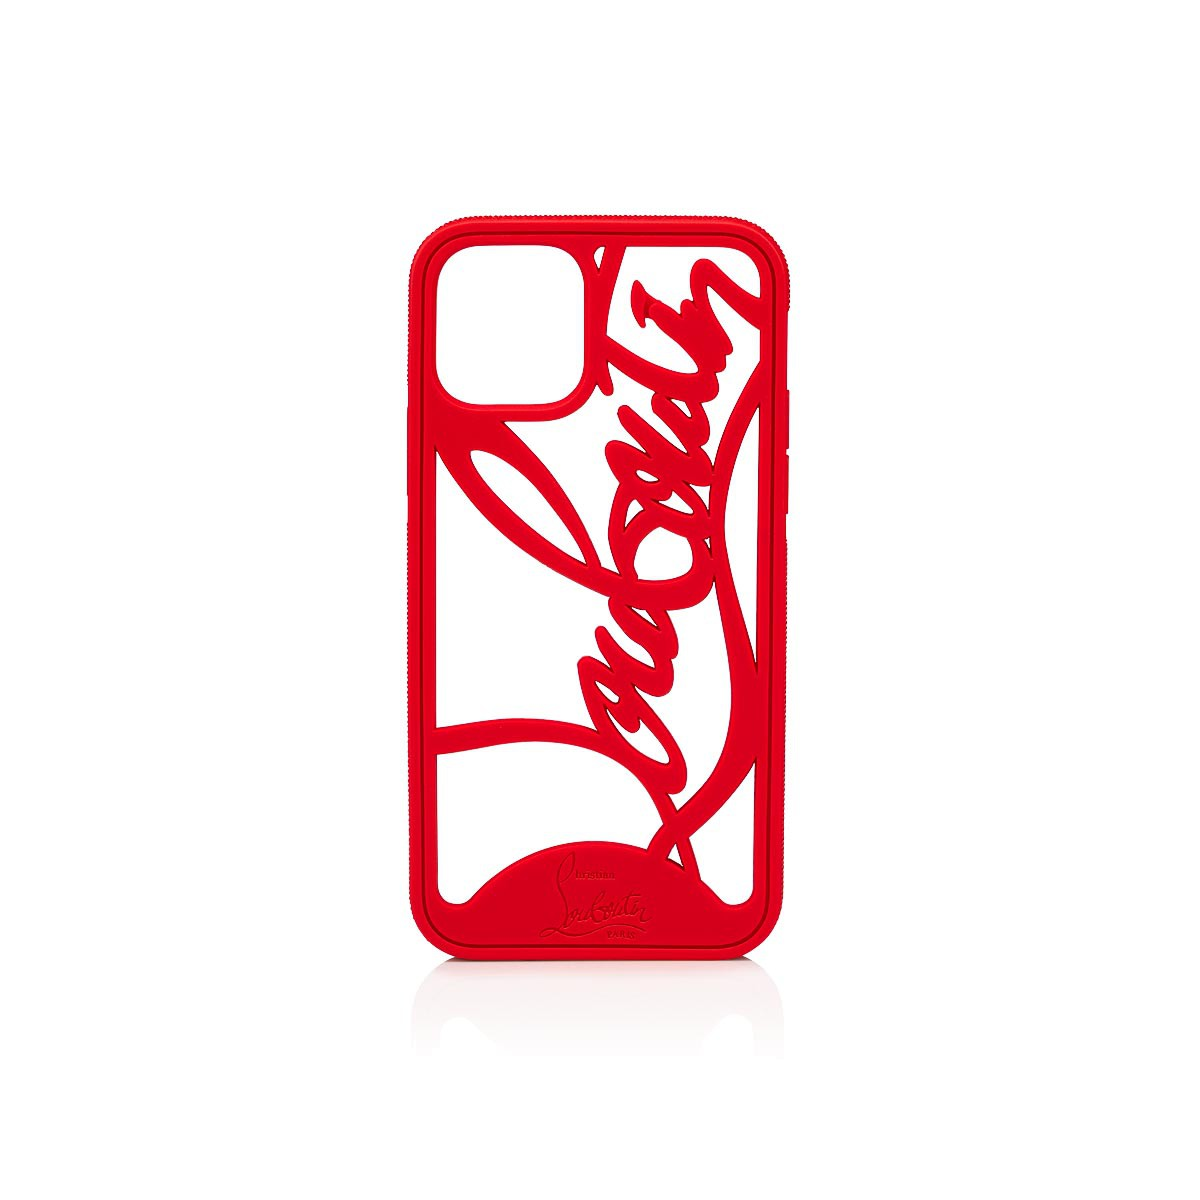 Small Leather Goods - Louboutin Logo Case Iphone 11 Pro - Christian Louboutin